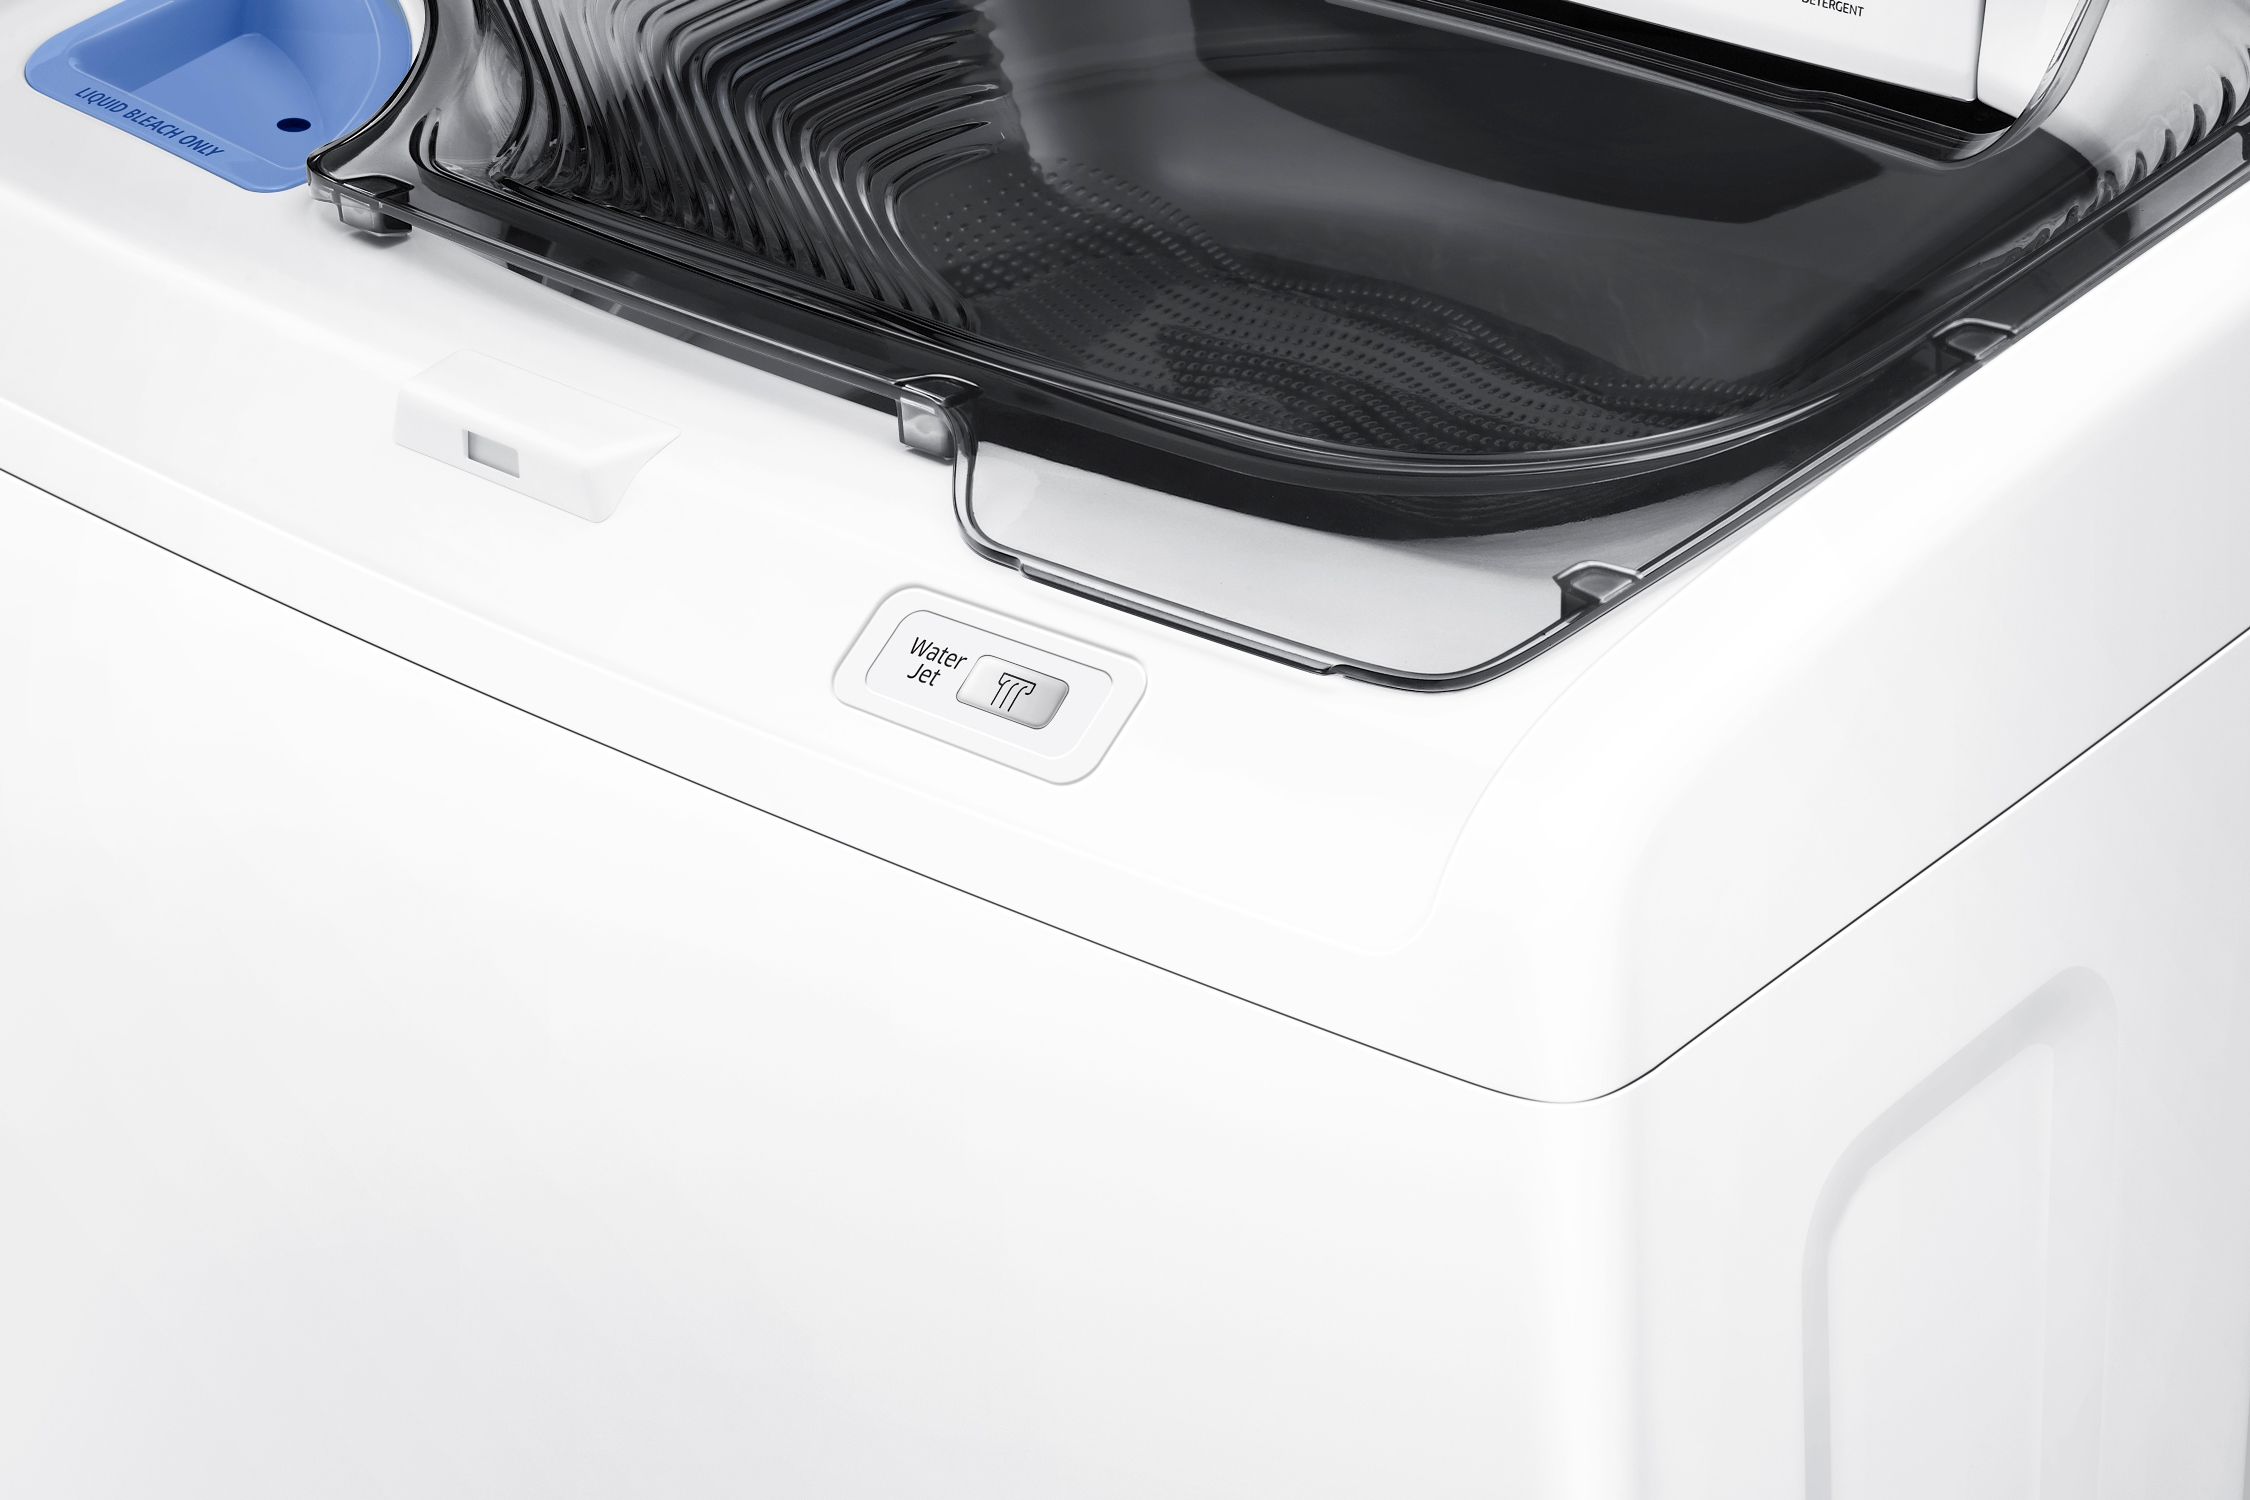 Samsung WA52J8700AW/A2 5.2 cu. ft. Top Load Washer With Activewash™ White